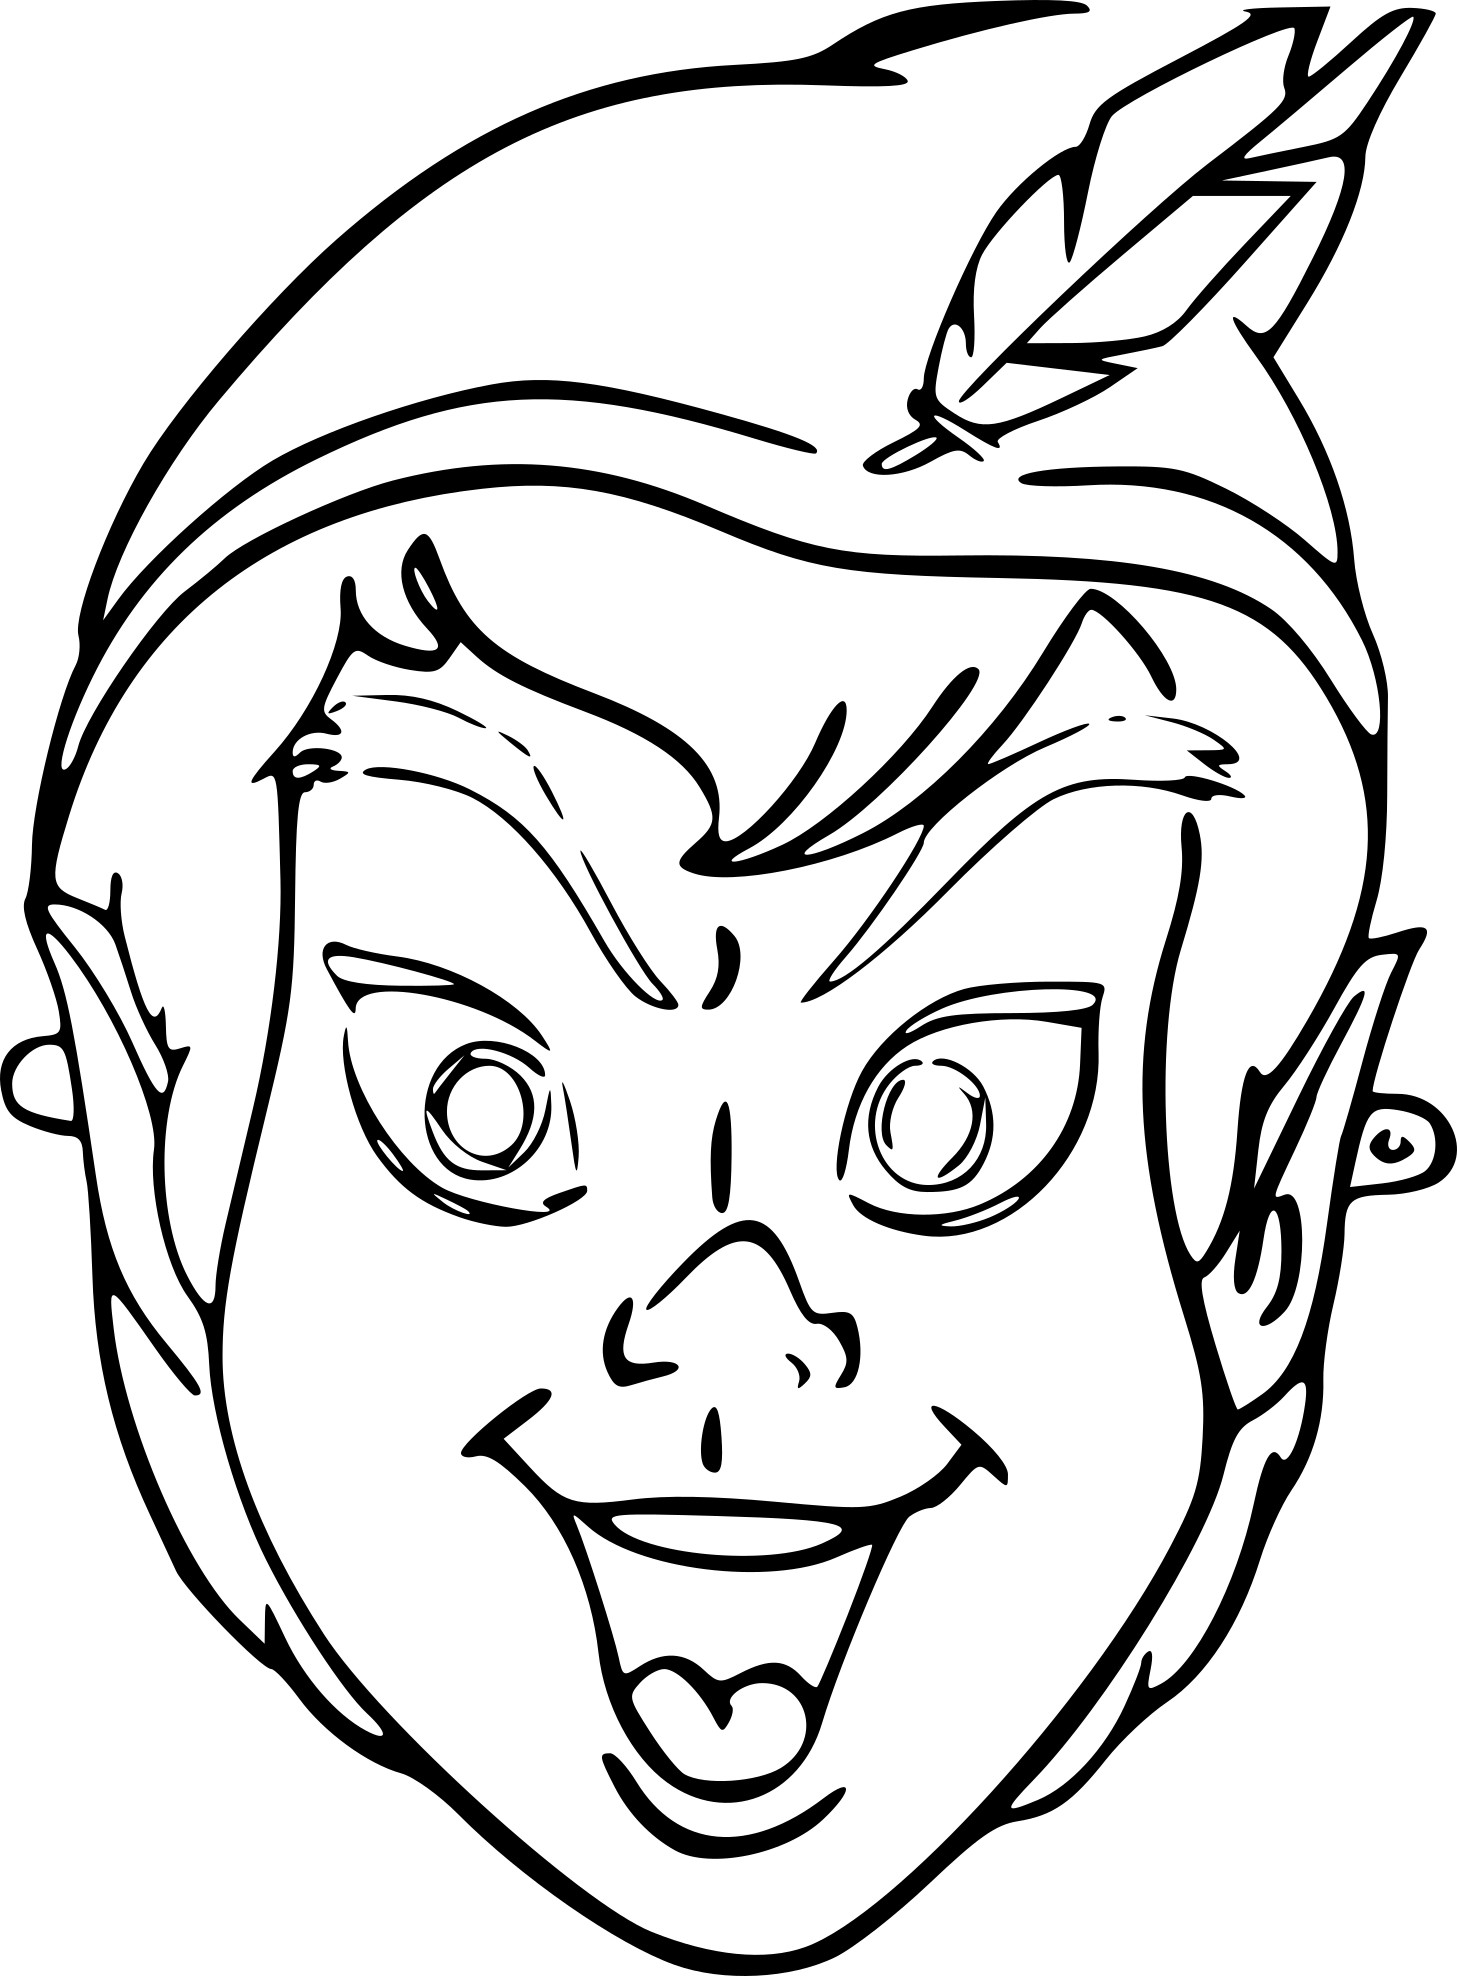 Coloriage masque peter pan imprimer - Coloriages peter pan ...